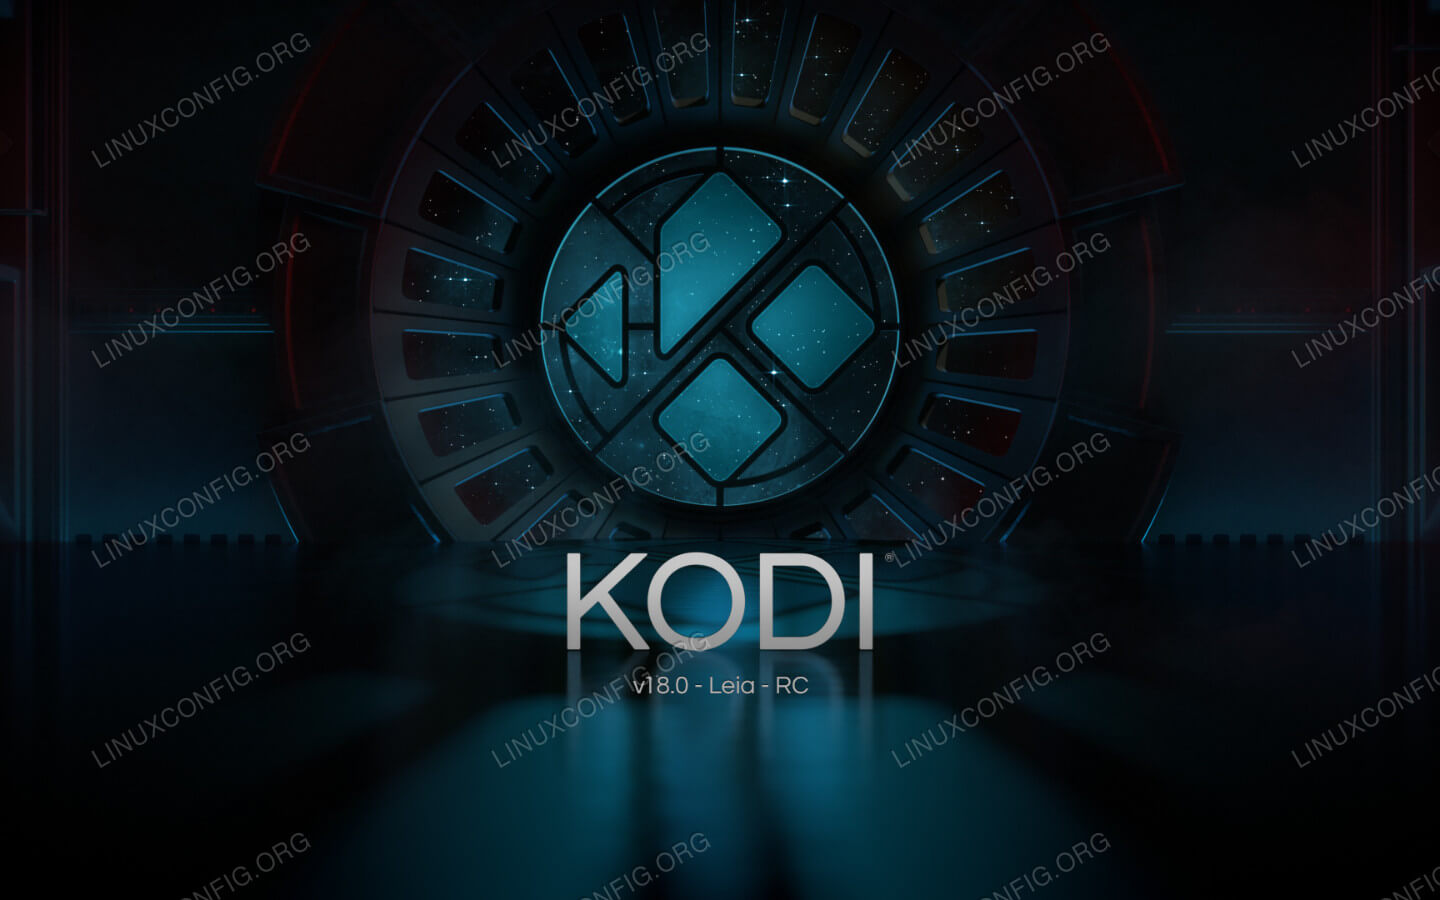 Install Kodi Beta on Ubuntu.